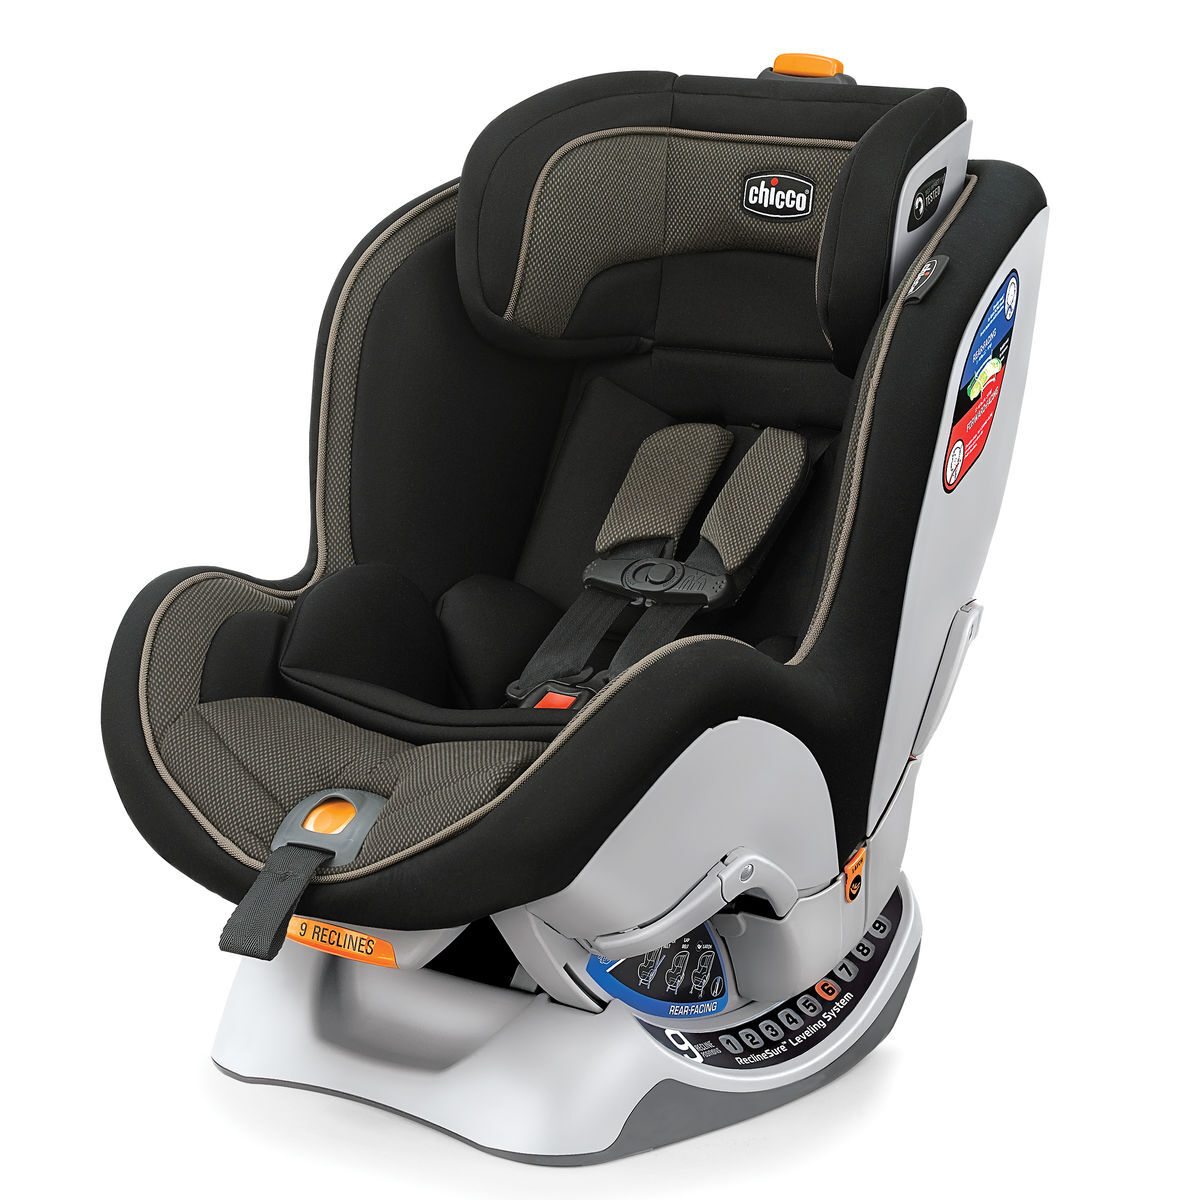 Where Can I Buy A Car Seat Travel Bag